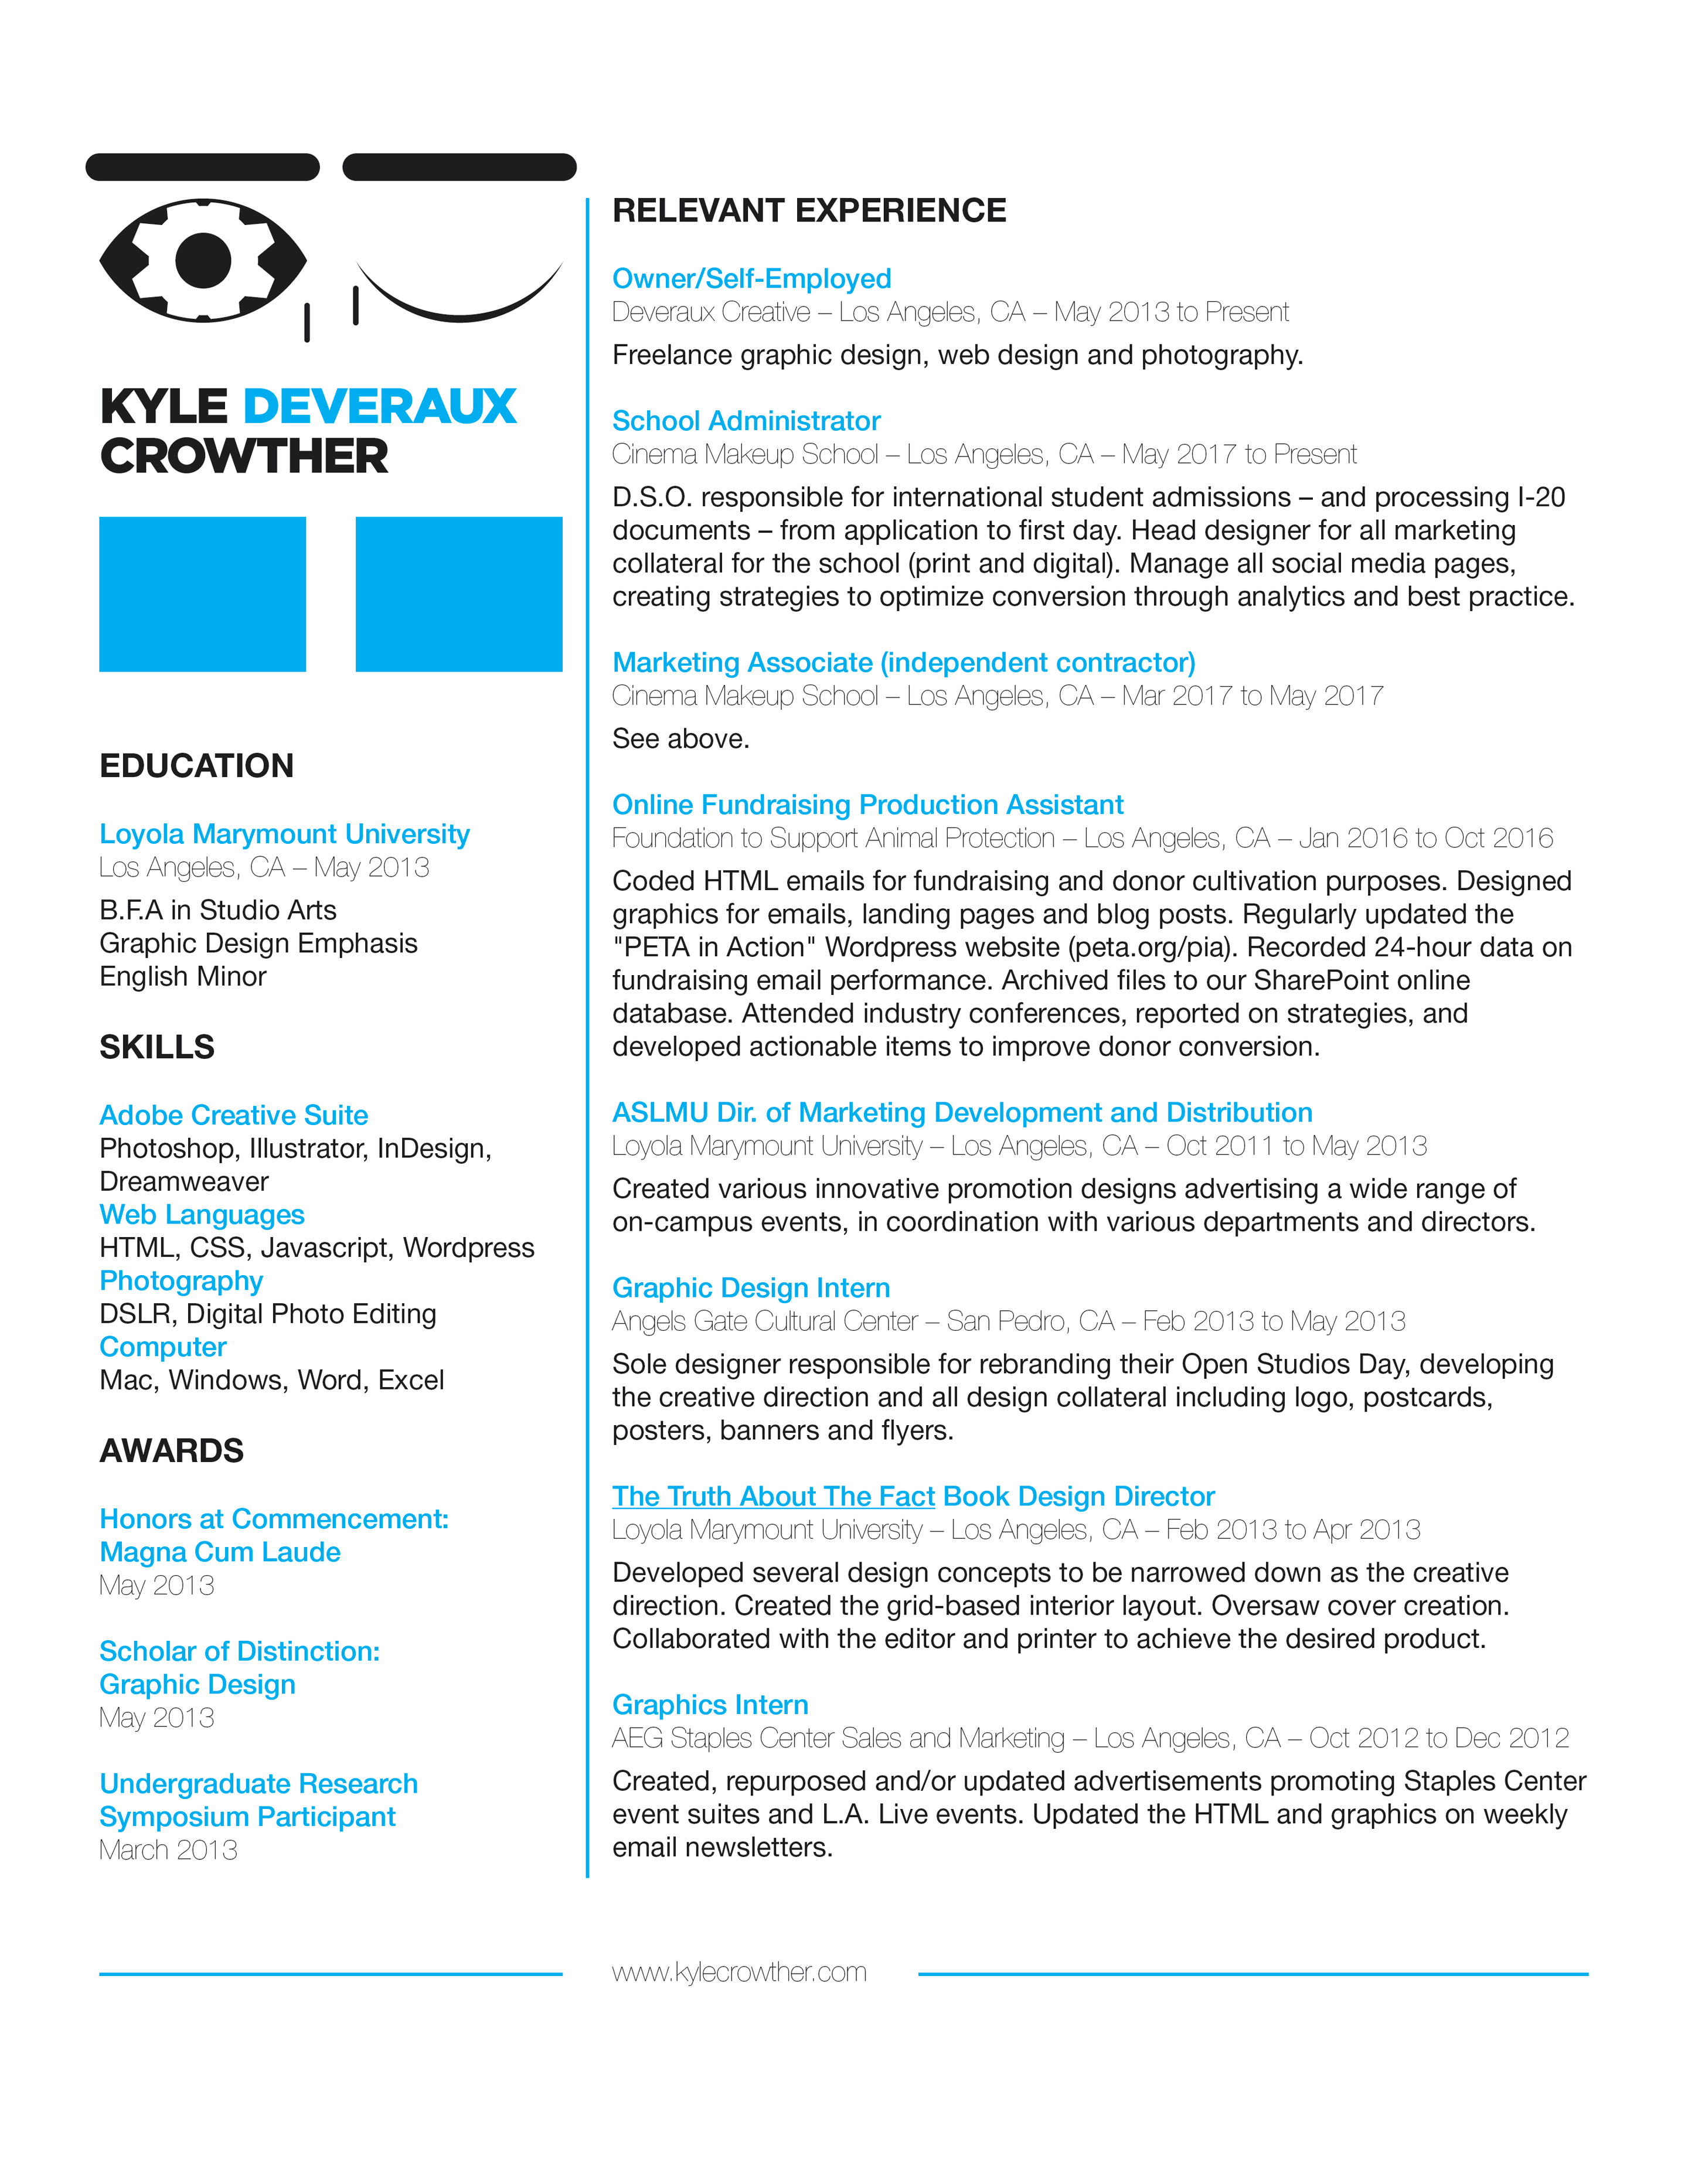 Resume | Kyle Crowther